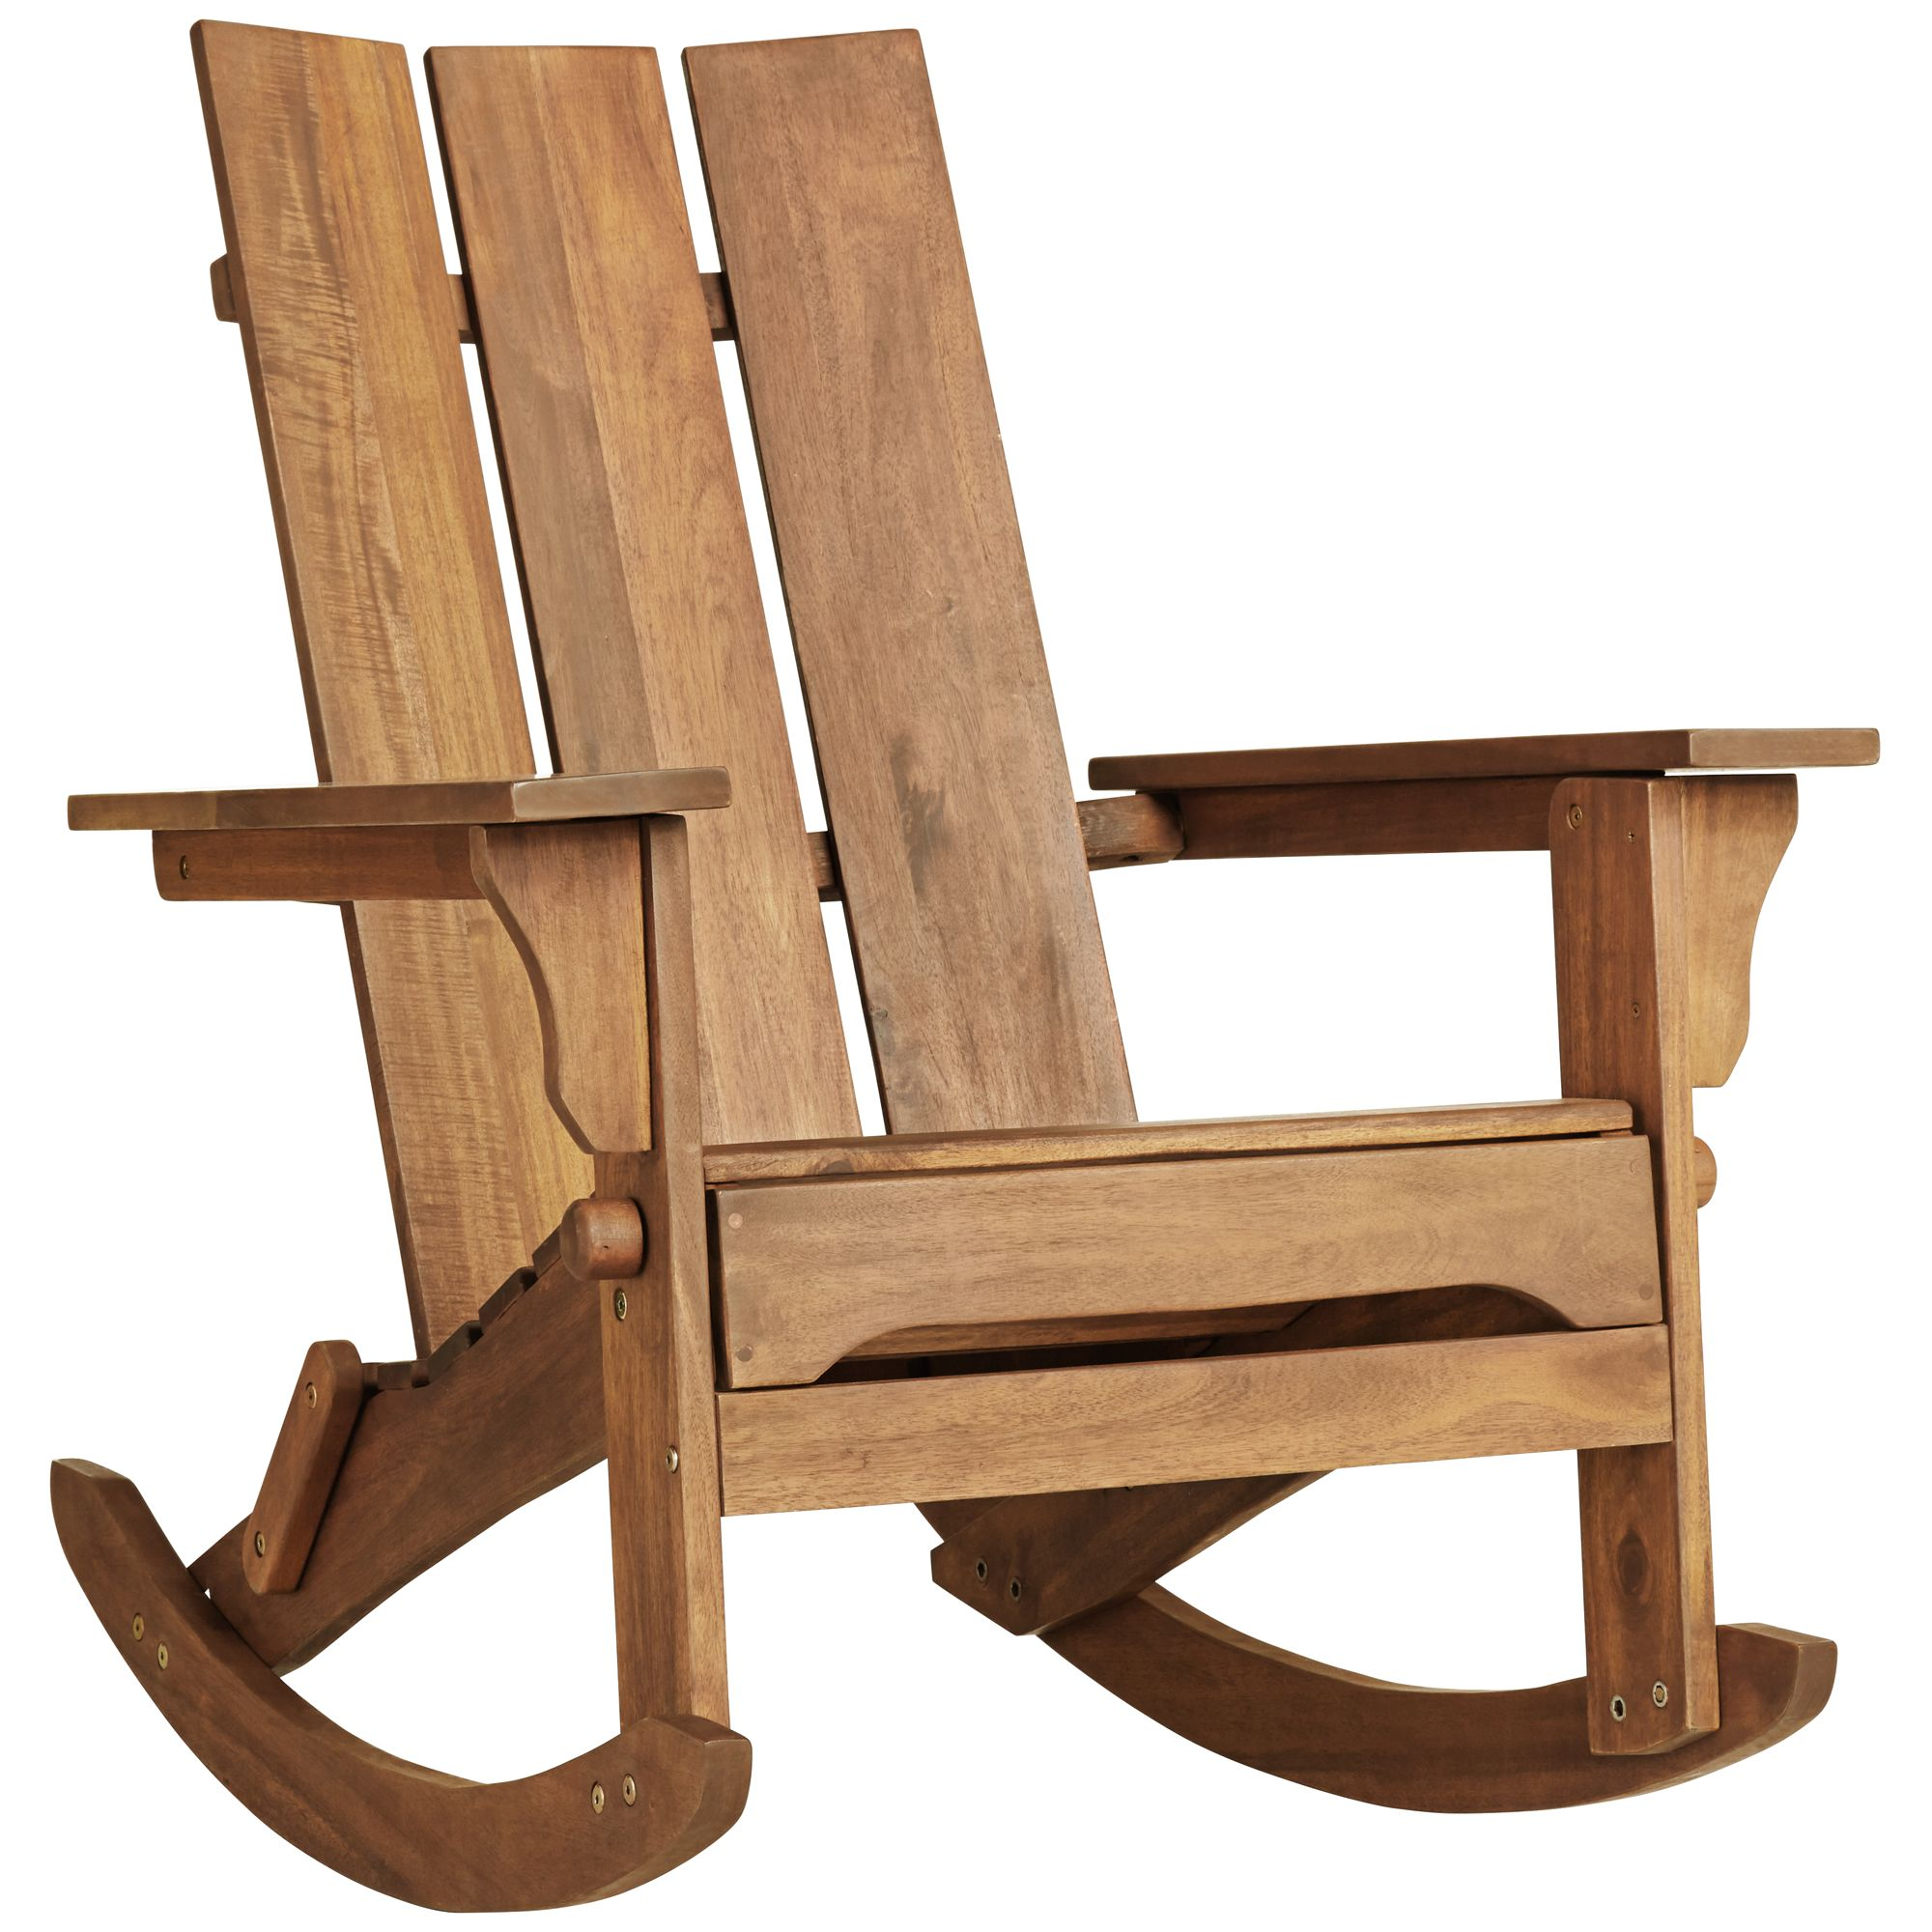 Teal Island Designs Modern Adirondack Rocking Chair